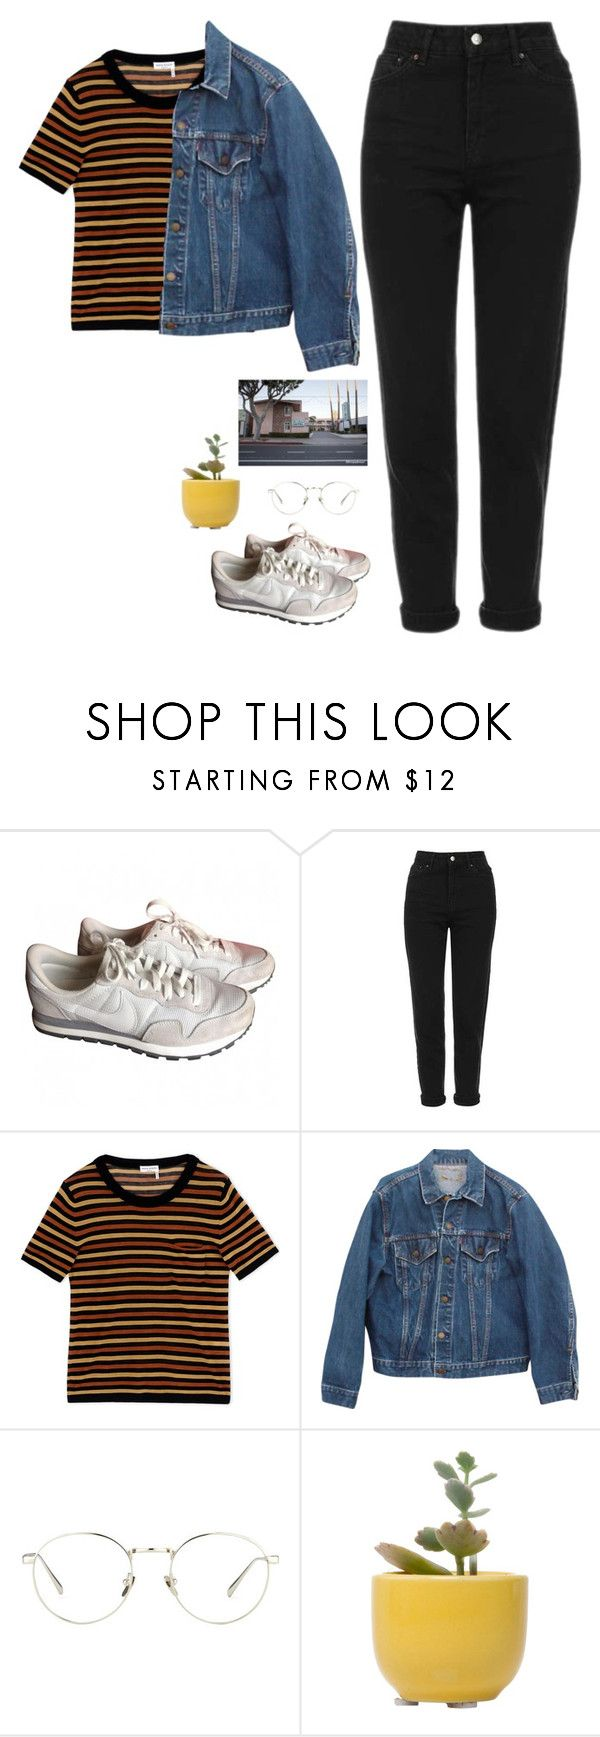 """""""Untitled #337"""" by abigayle-h ❤ liked on Polyvore featuring NIKE, Topshop, Sonia Rykiel, Levi's, Linda Farrow and Dot & Bo"""